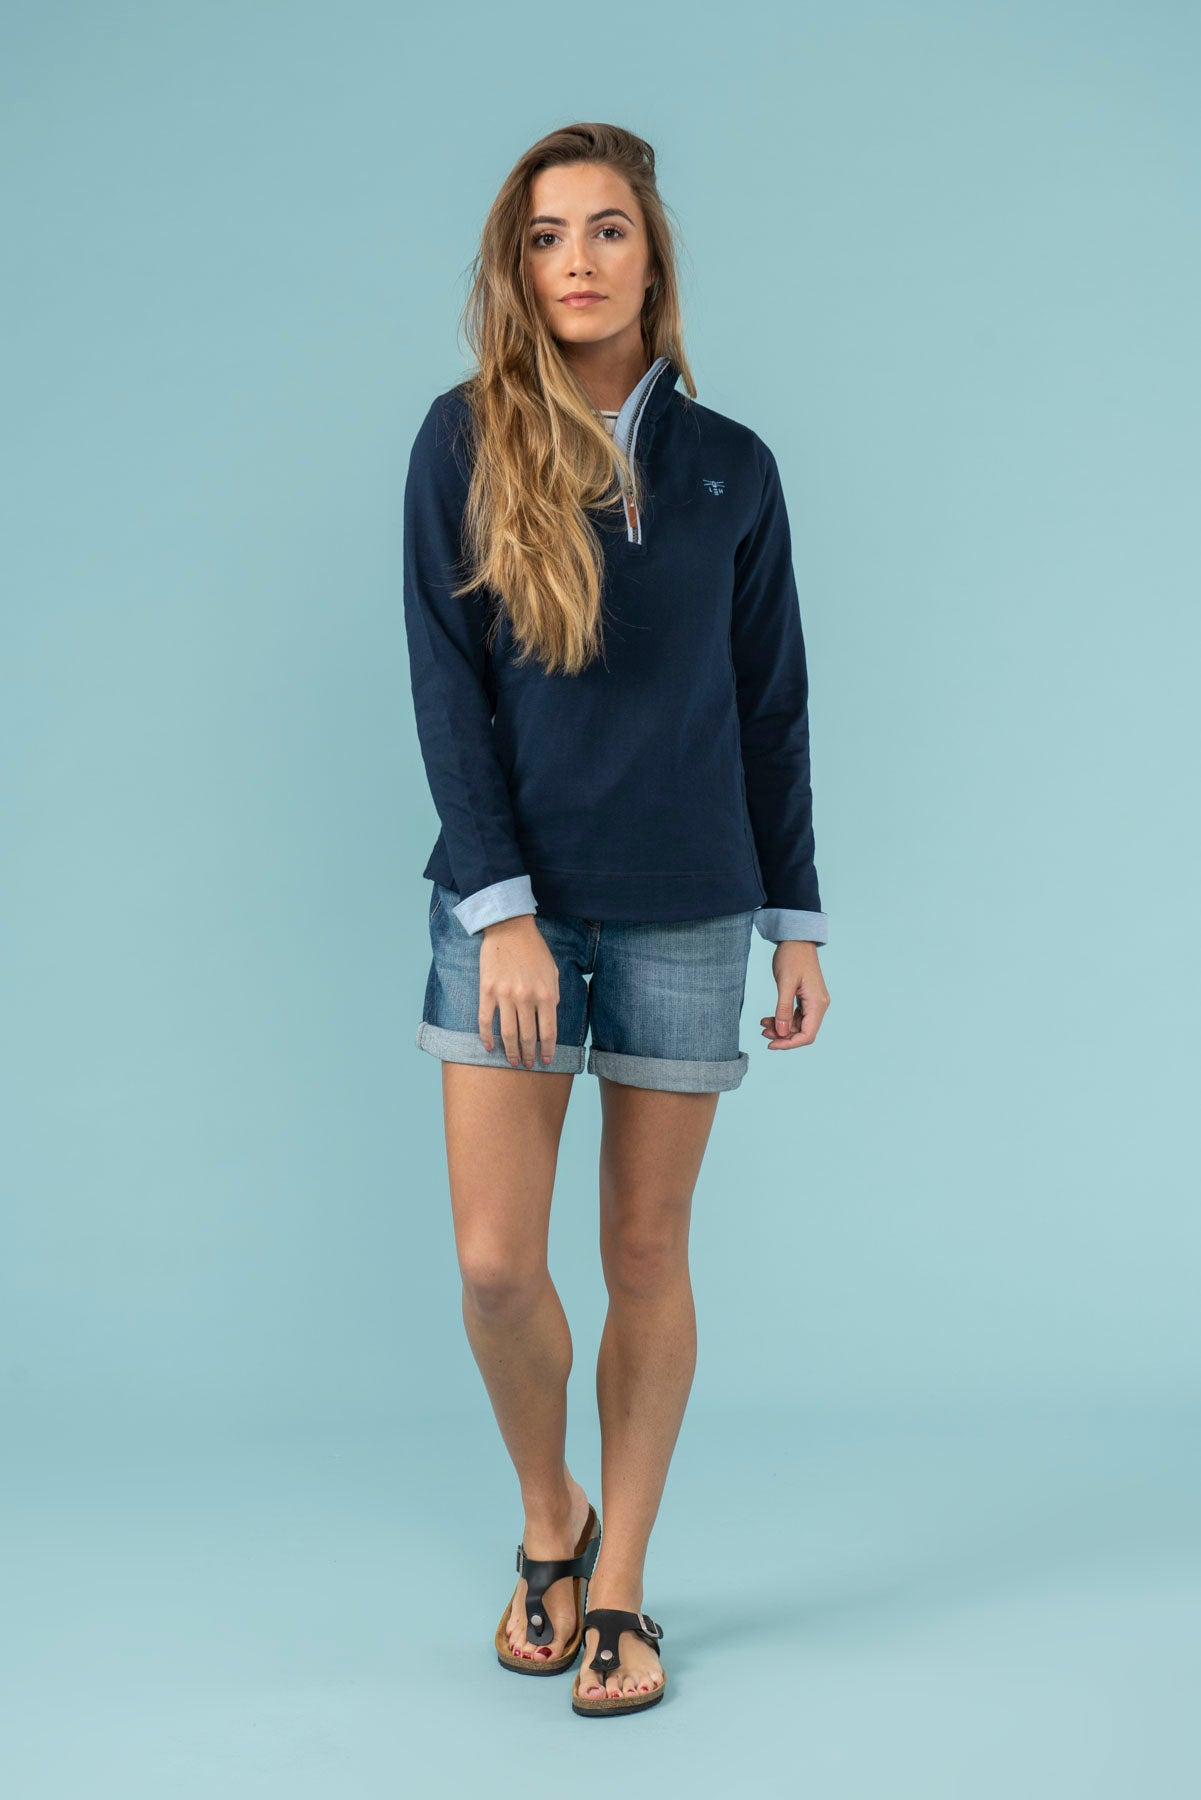 Women's Tops - Shore - Navy Half Zip Sweatshirt